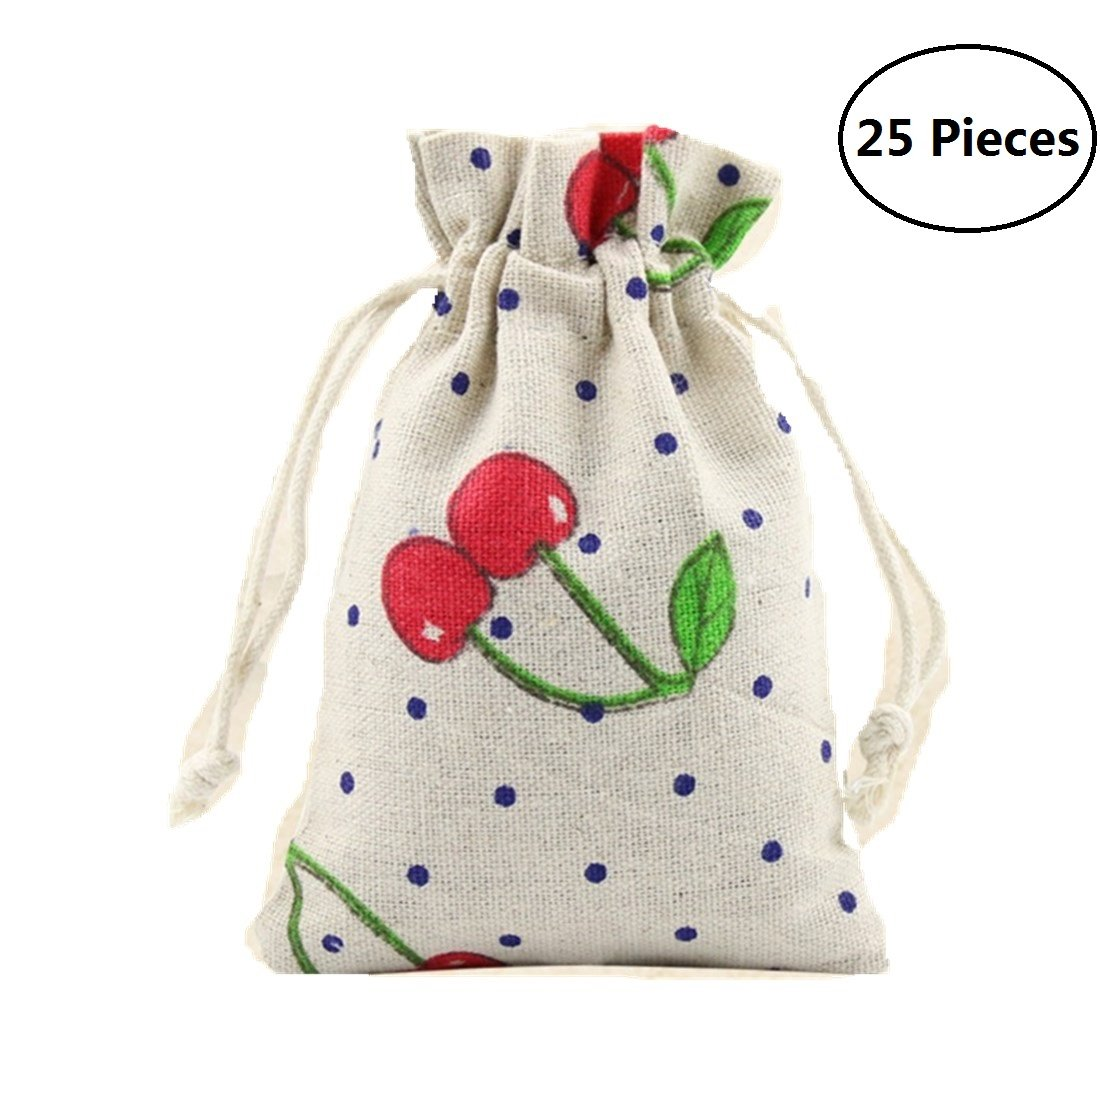 Tsuen 25 Pcs Burlap Bags with Drawstring Gift Bags for Wedding Party, Arts and Crafts Projects, Jewelry Pouches, Candy Bags, Birthday Parties Shower Christmas Favor, Lots of 25 (Cherry Pattern)